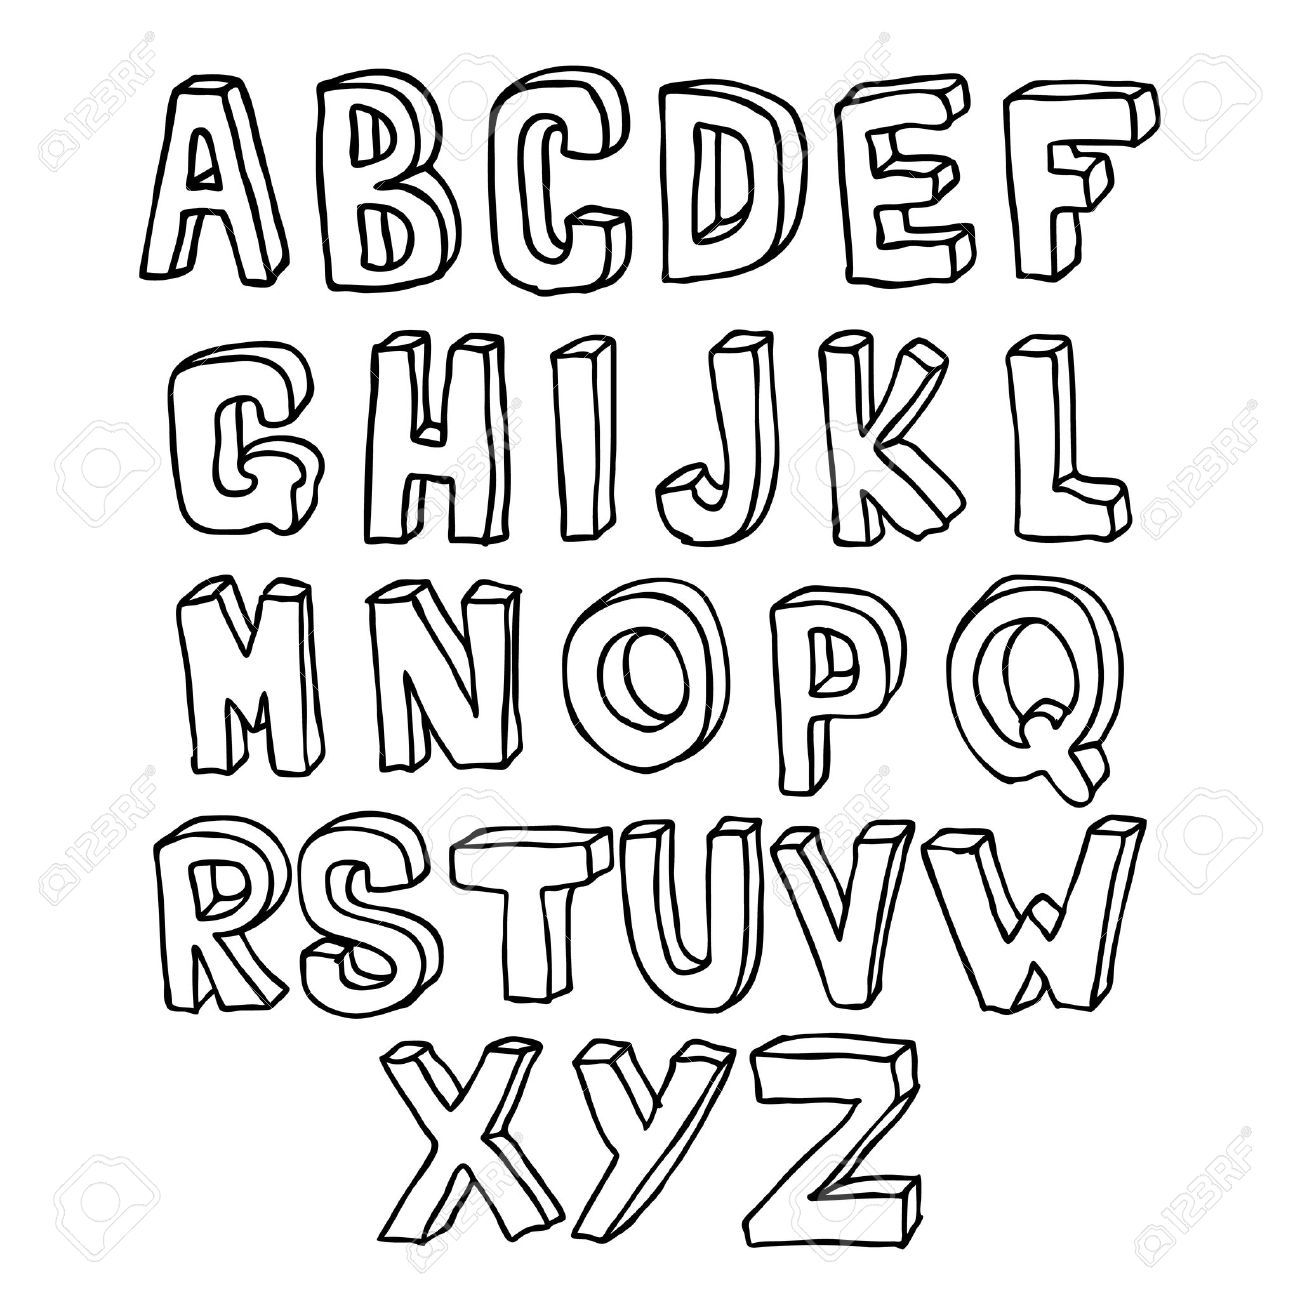 lettering alphabet hand drawn lettering 3d alphabet royalty free cliparts hand lettering. Black Bedroom Furniture Sets. Home Design Ideas